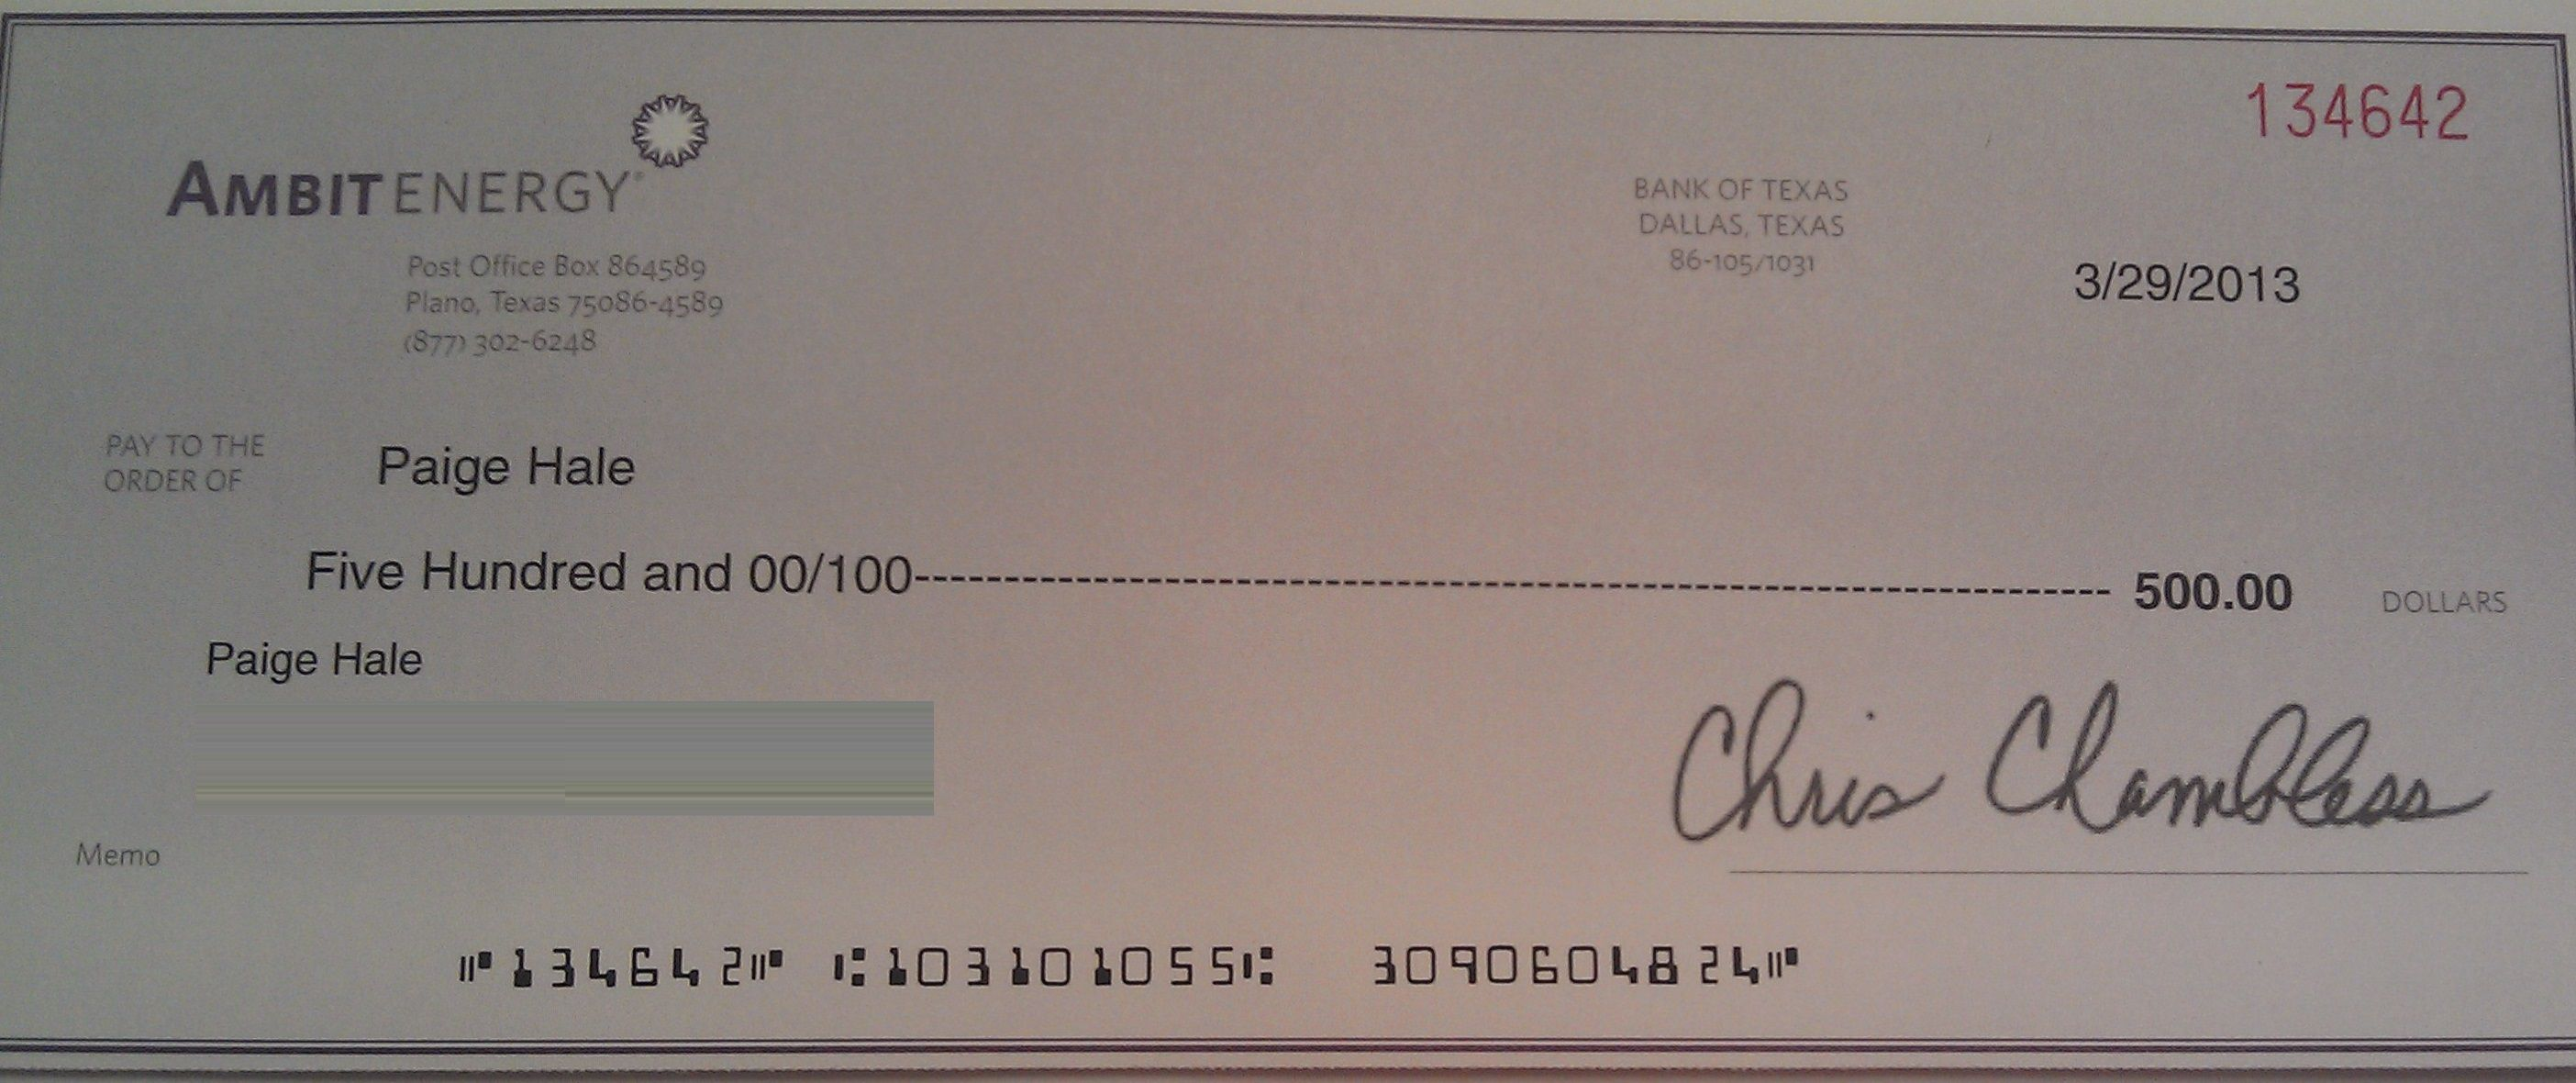 Ambit Energy >> $500! 3rd check from Ambit! | Ambit Energy: Walking Toward Financial…